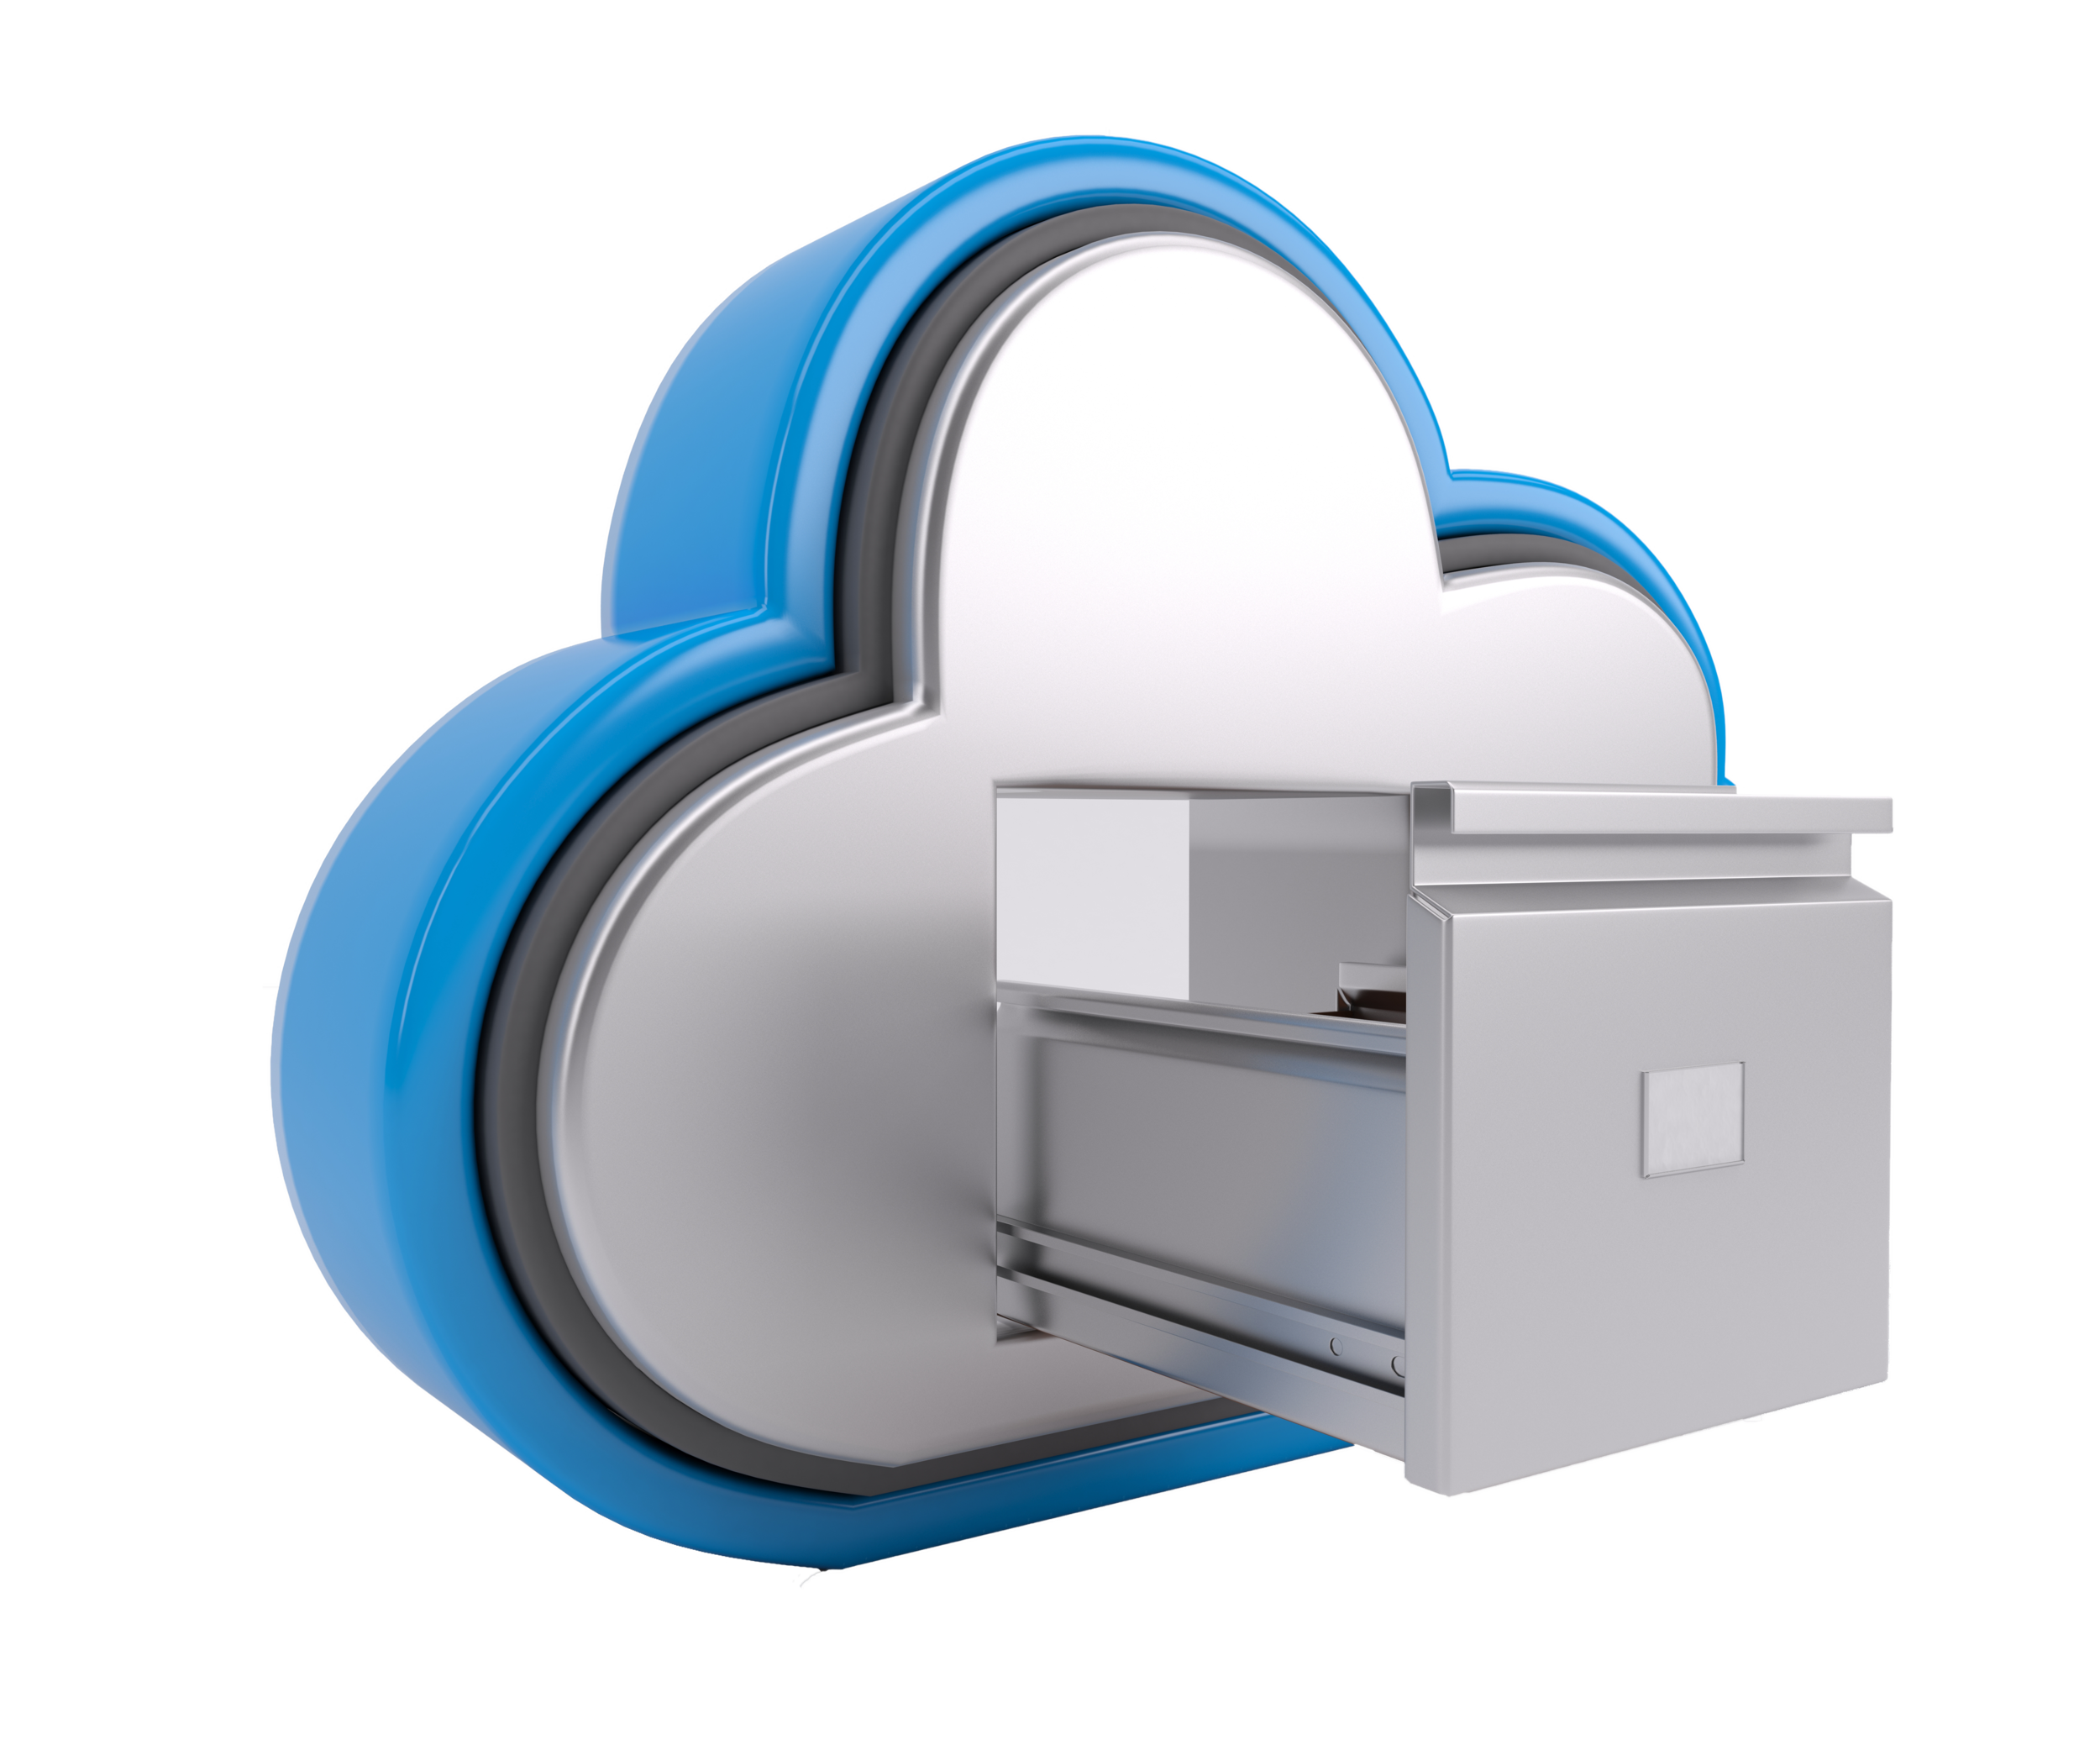 kisspng-cloud-storage-backup-software-hd-cloud-storage-5aa2ace3608c70.2426694515206105313955.png